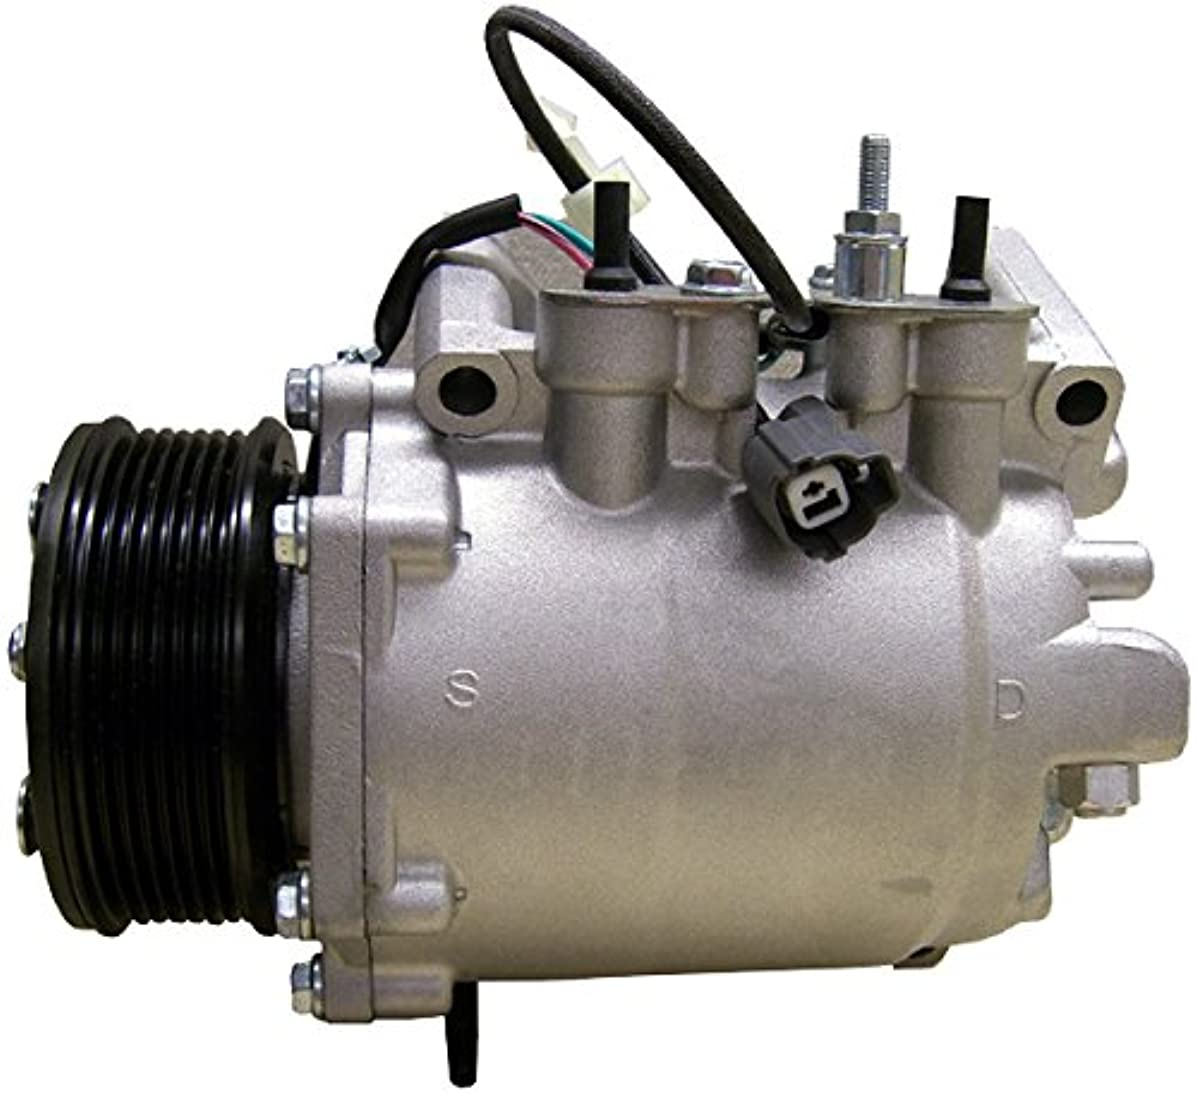 HELLA 351340031 Air Conditioning Compressor